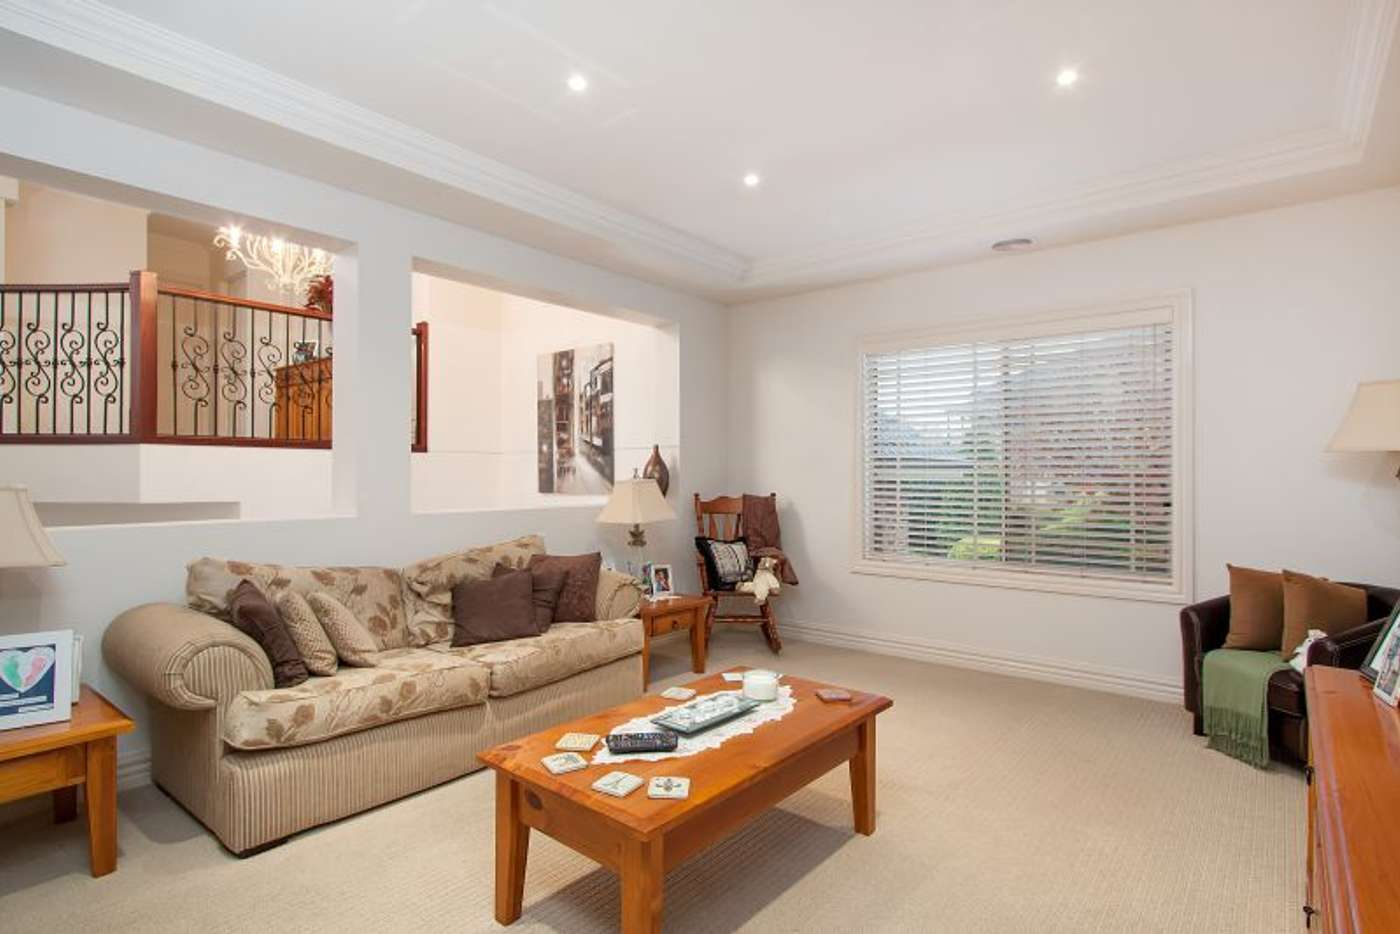 Sixth view of Homely house listing, 3 Idaho Street, Tolland NSW 2650